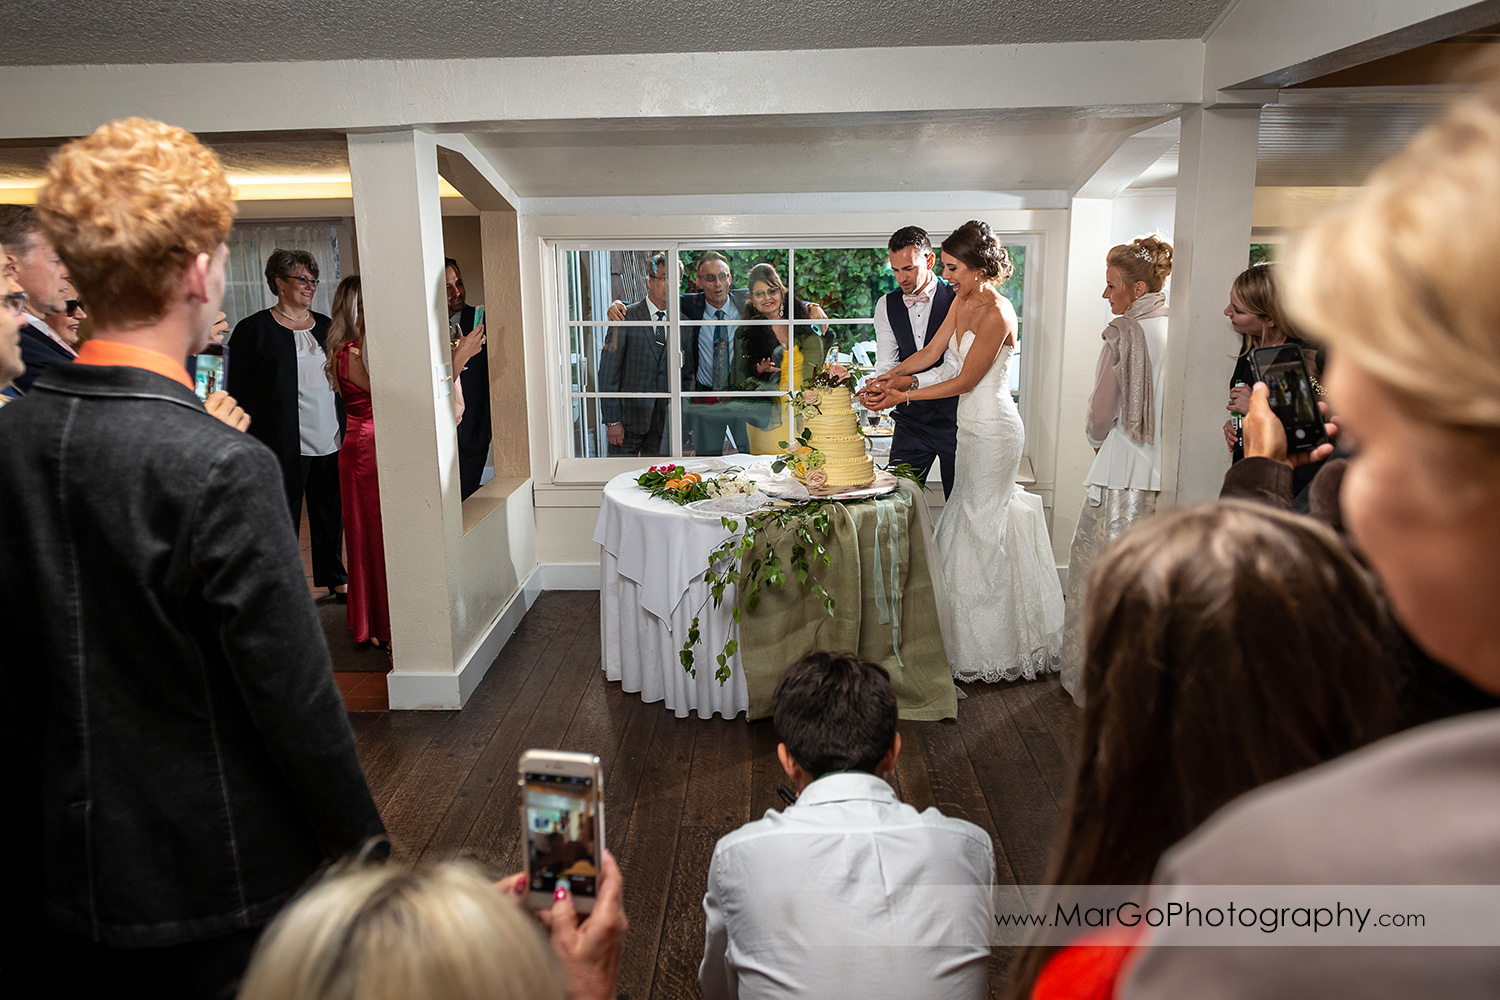 bride and groom cutting wedding cake during reception at San Pablo Rockefeller Lodge